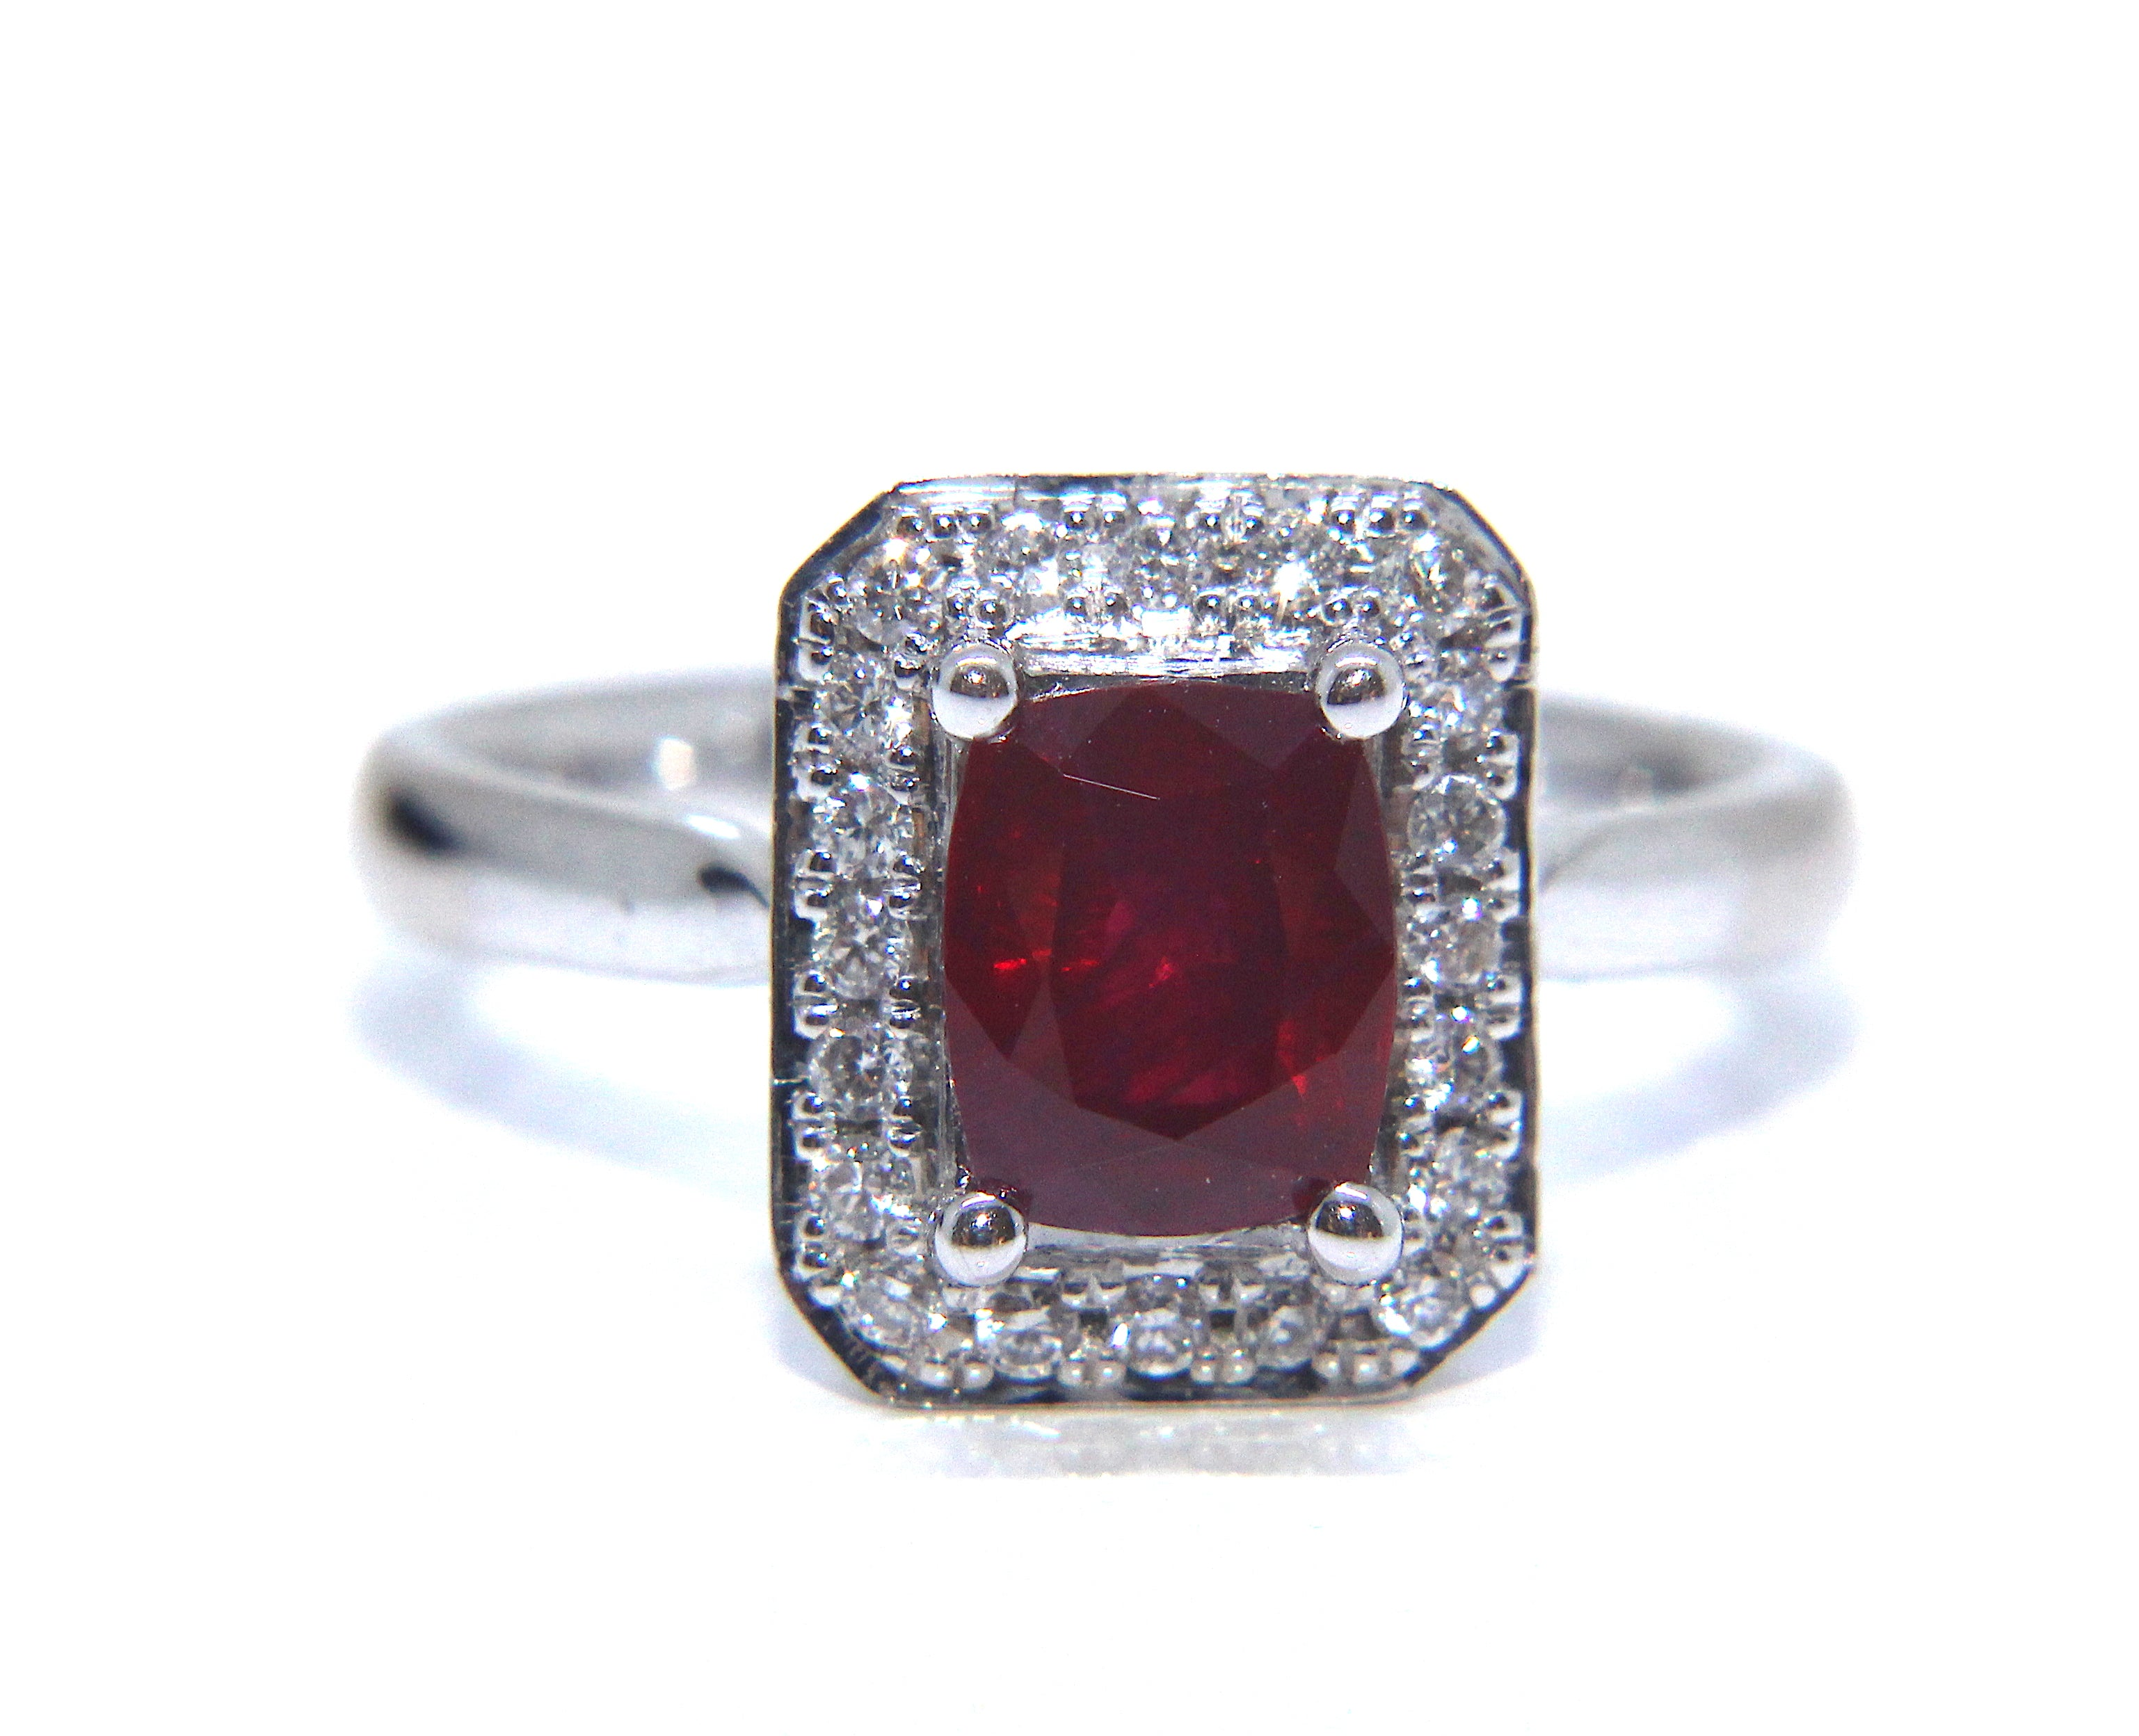 f nj clifton round jewelry with usa s natural ring lady rings g fine carat and diamond oval ruby red tw egl white diamonds ayens